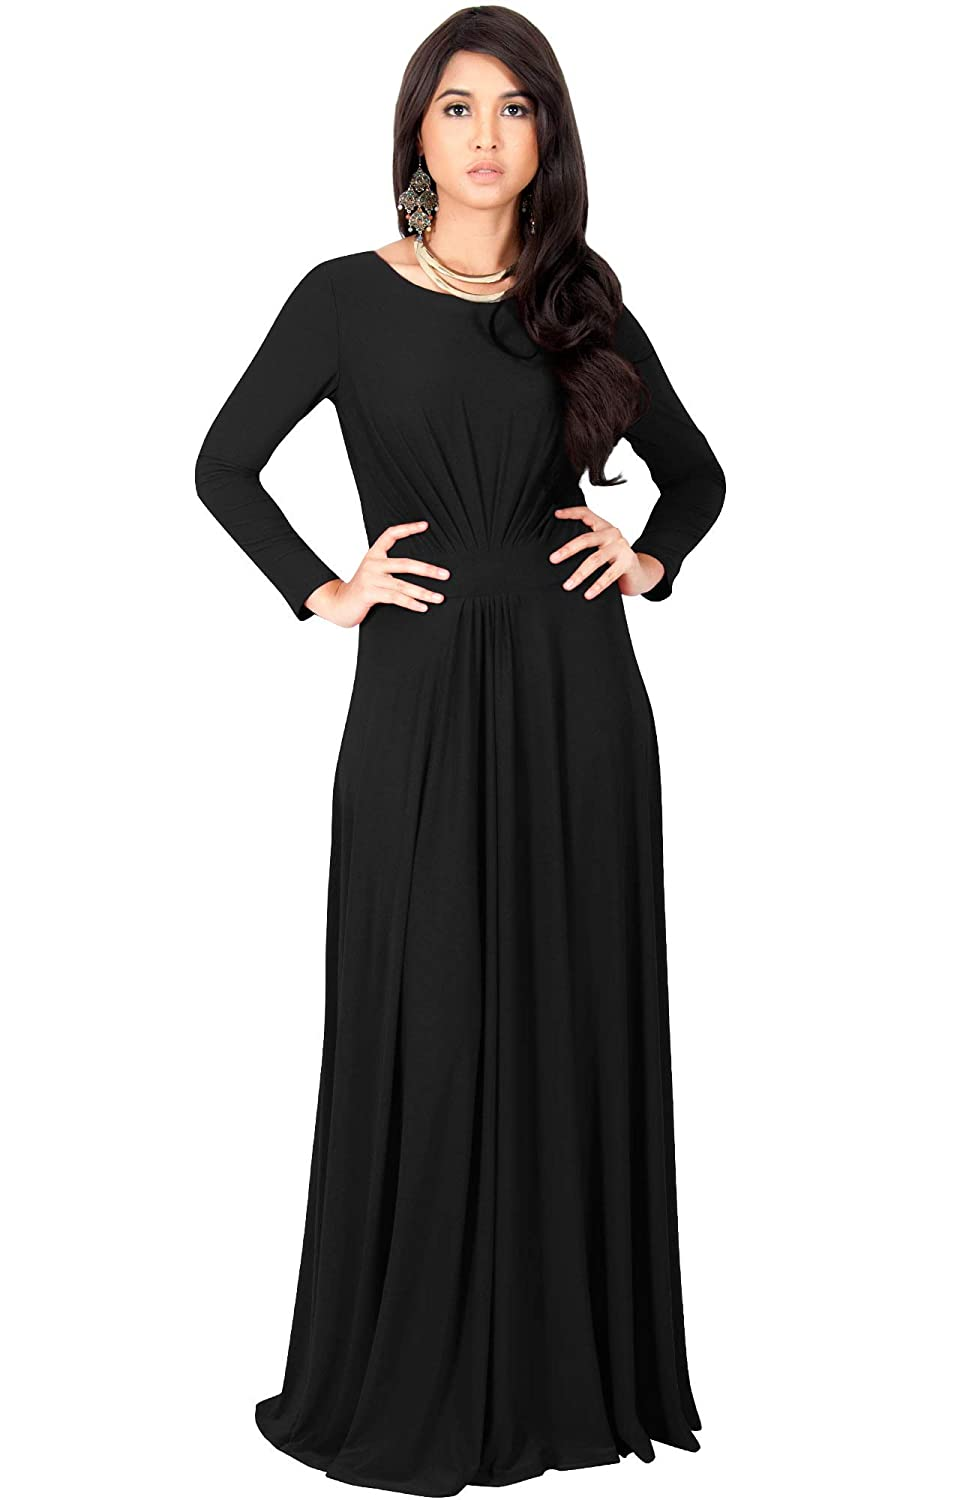 edfe27274e08 KOH KOH Sleeve Flowy Empire Waist Fall Winter Party Gown at Amazon Women's  Clothing store: Long Sleeve Maxi Dress Black